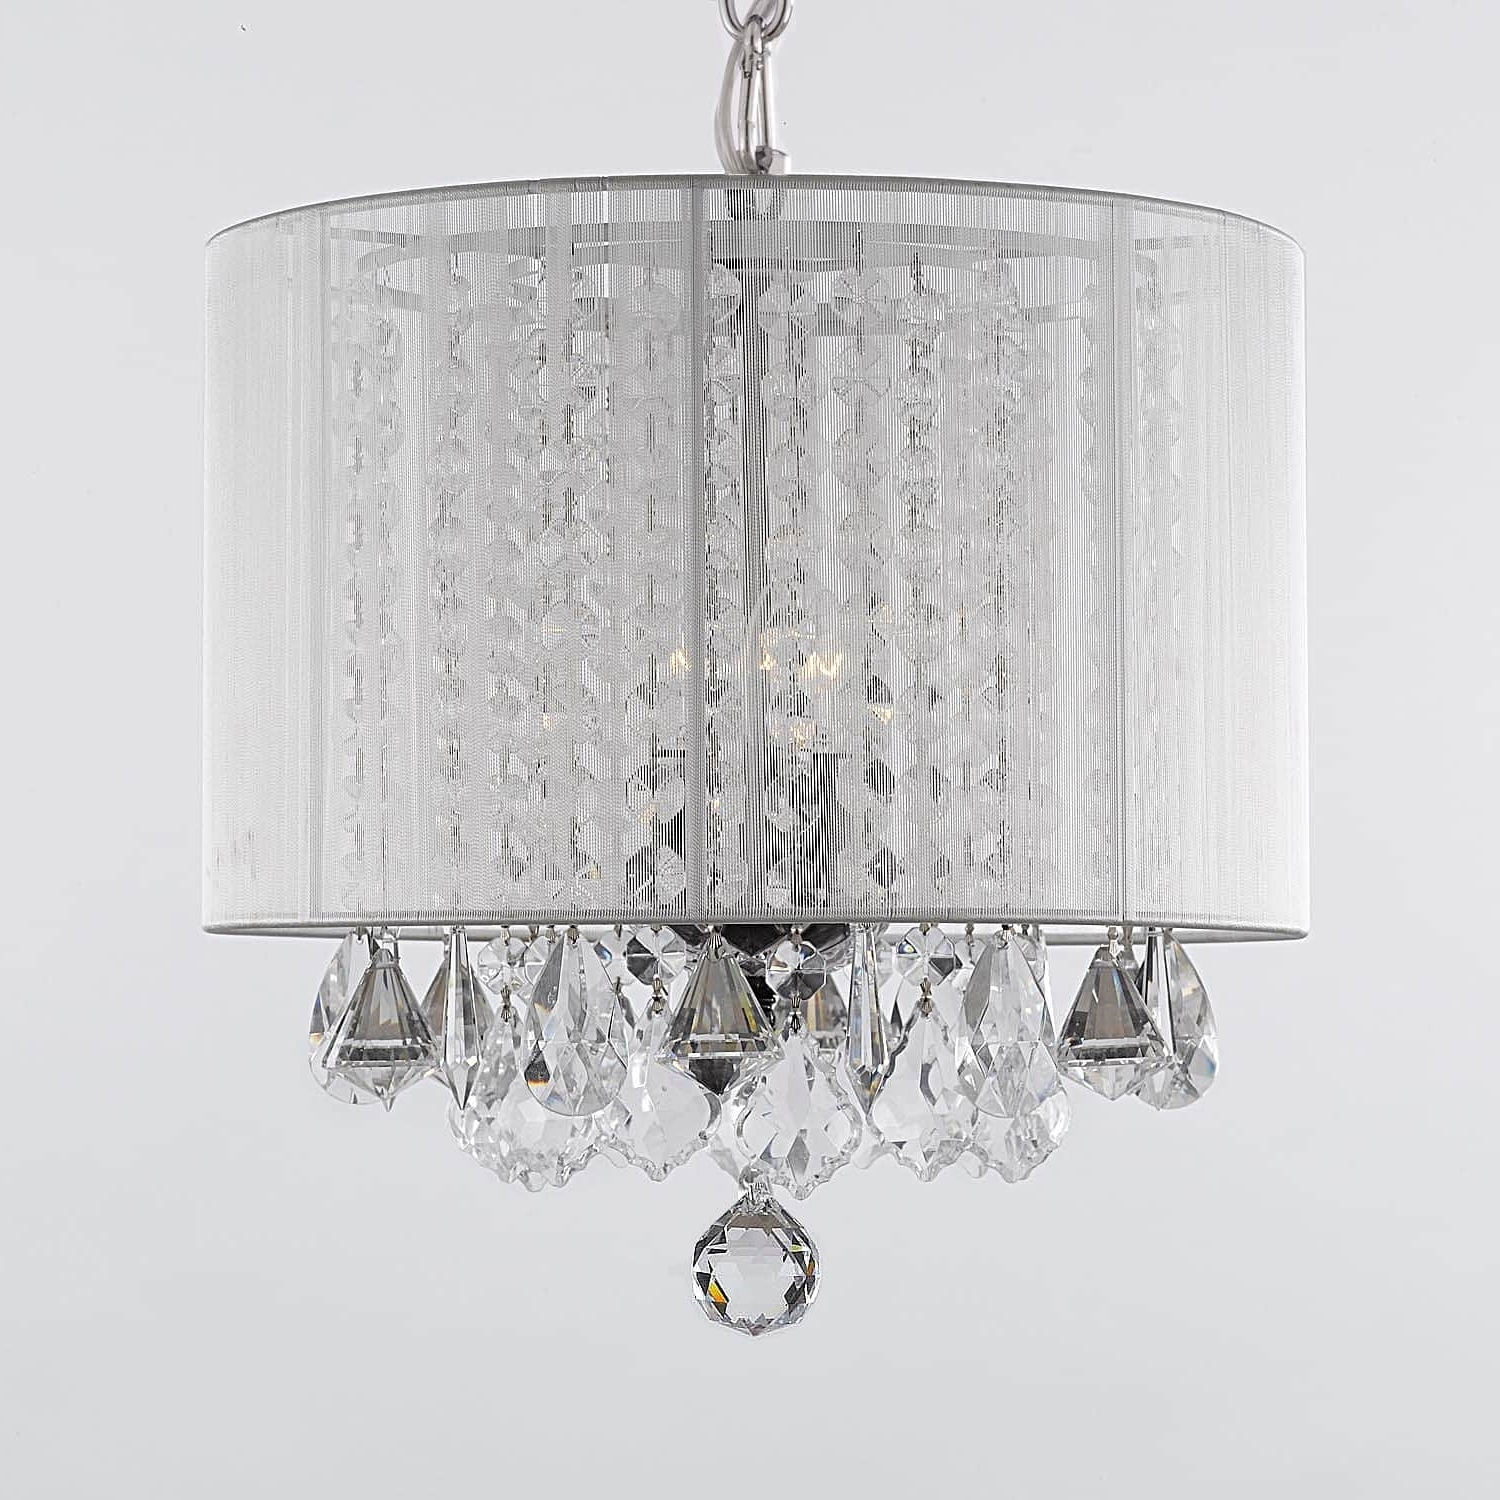 3 Light Crystal Chandeliers For Widely Used Gallery 3 Light Crystal Chandelier With Shade – Free Shipping Today (Gallery 14 of 20)